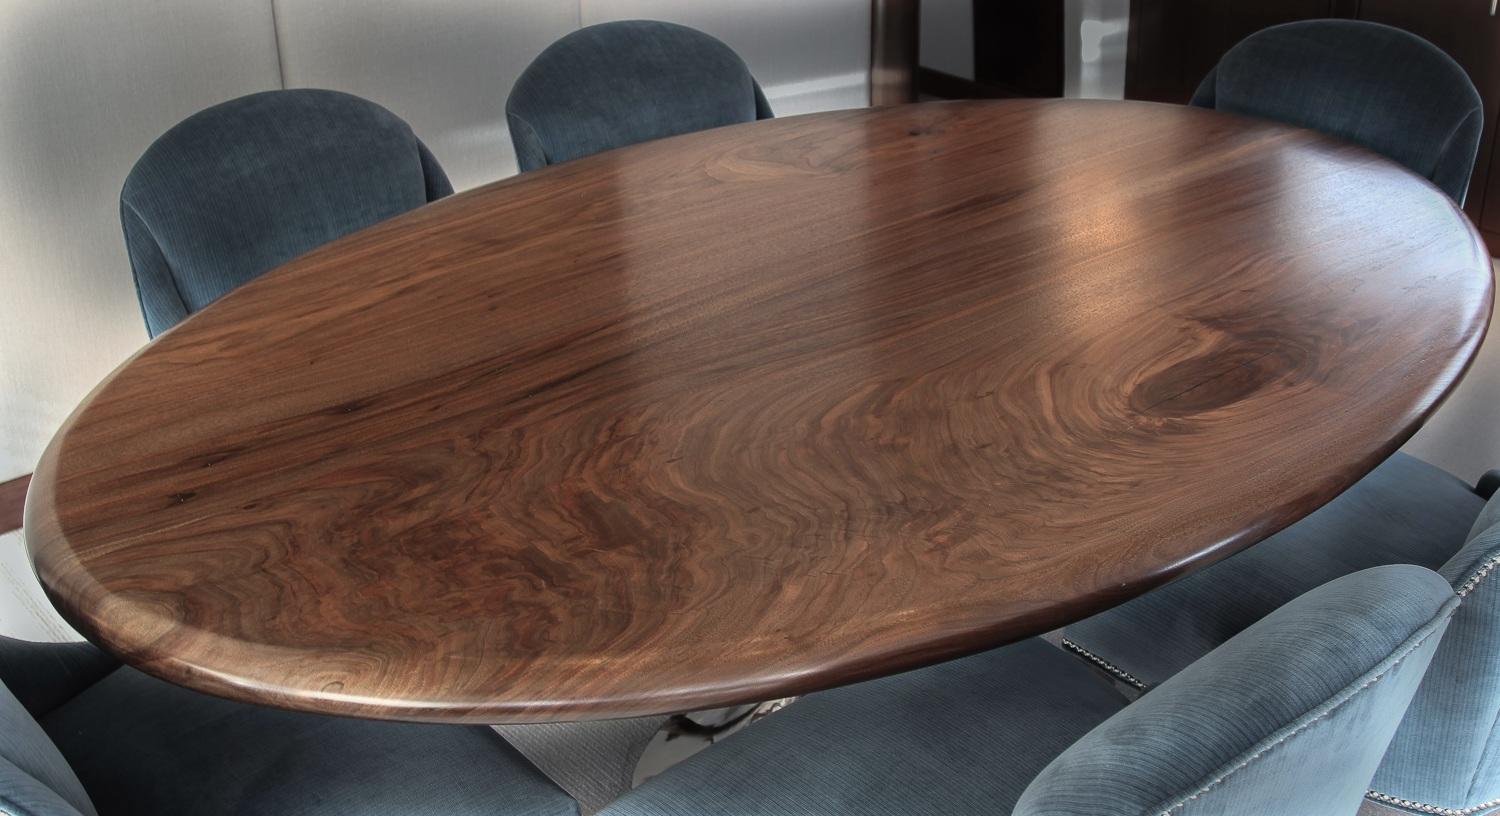 casi-ceola-table-top-with-chairs.jpg